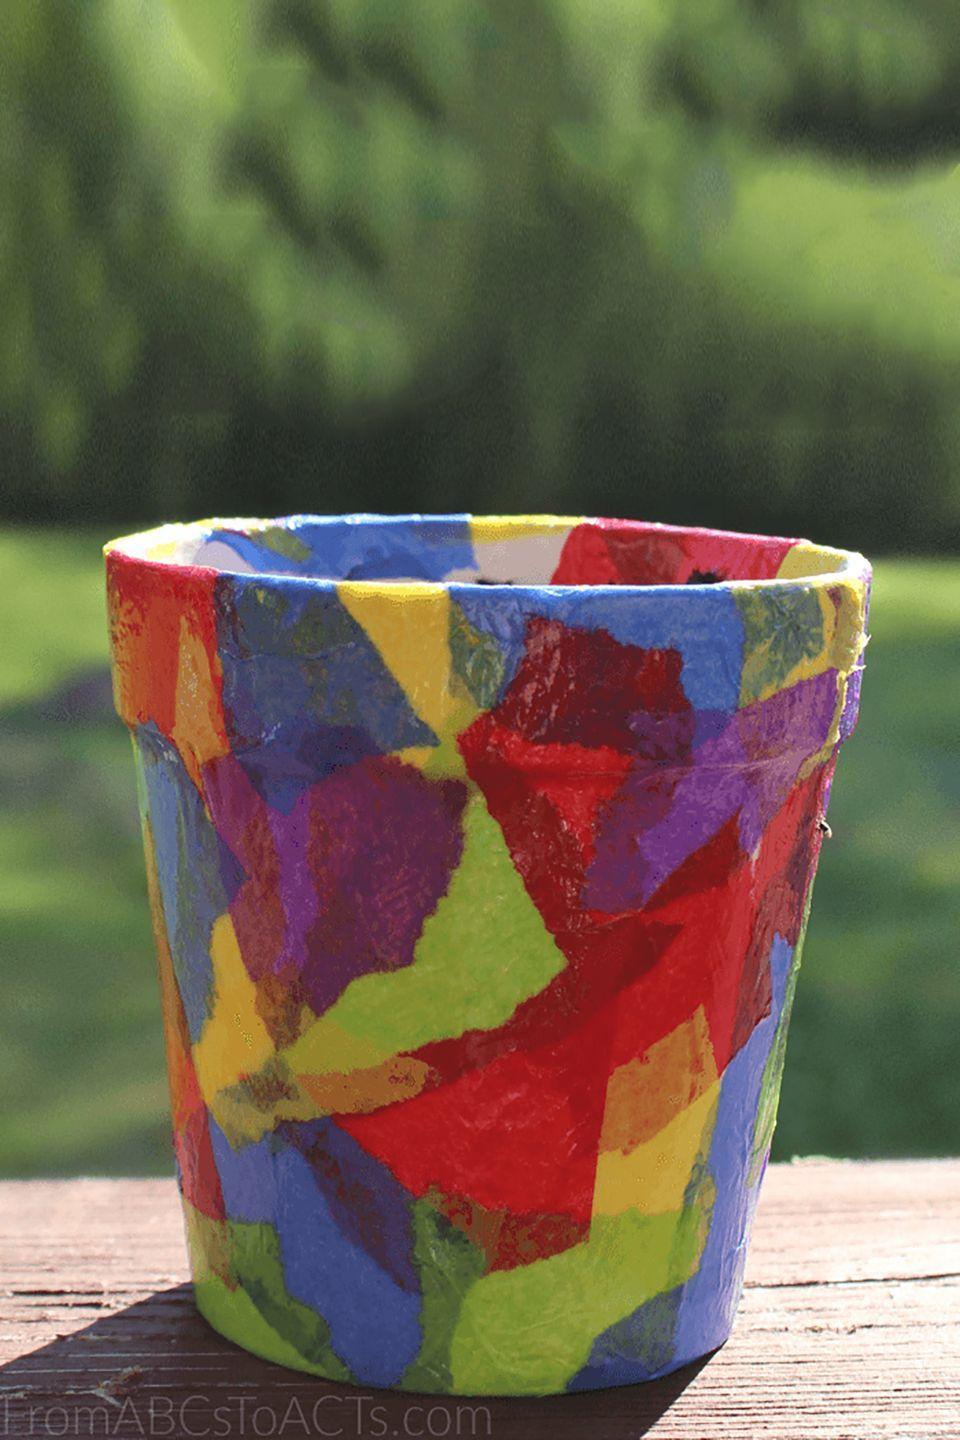 """<p>Have the kiddos help with tearing up tissue paper and glueing the pieces onto a flower pot. They'll love getting their hands dirty with this colorful craft!</p><p><strong>Get the tutorial at <a href=""""http://fromabcstoacts.com/tissue-paper-flower-pot"""" rel=""""nofollow noopener"""" target=""""_blank"""" data-ylk=""""slk:From ABCs To ACTs"""" class=""""link rapid-noclick-resp"""">From ABCs To ACTs</a>. </strong></p>"""